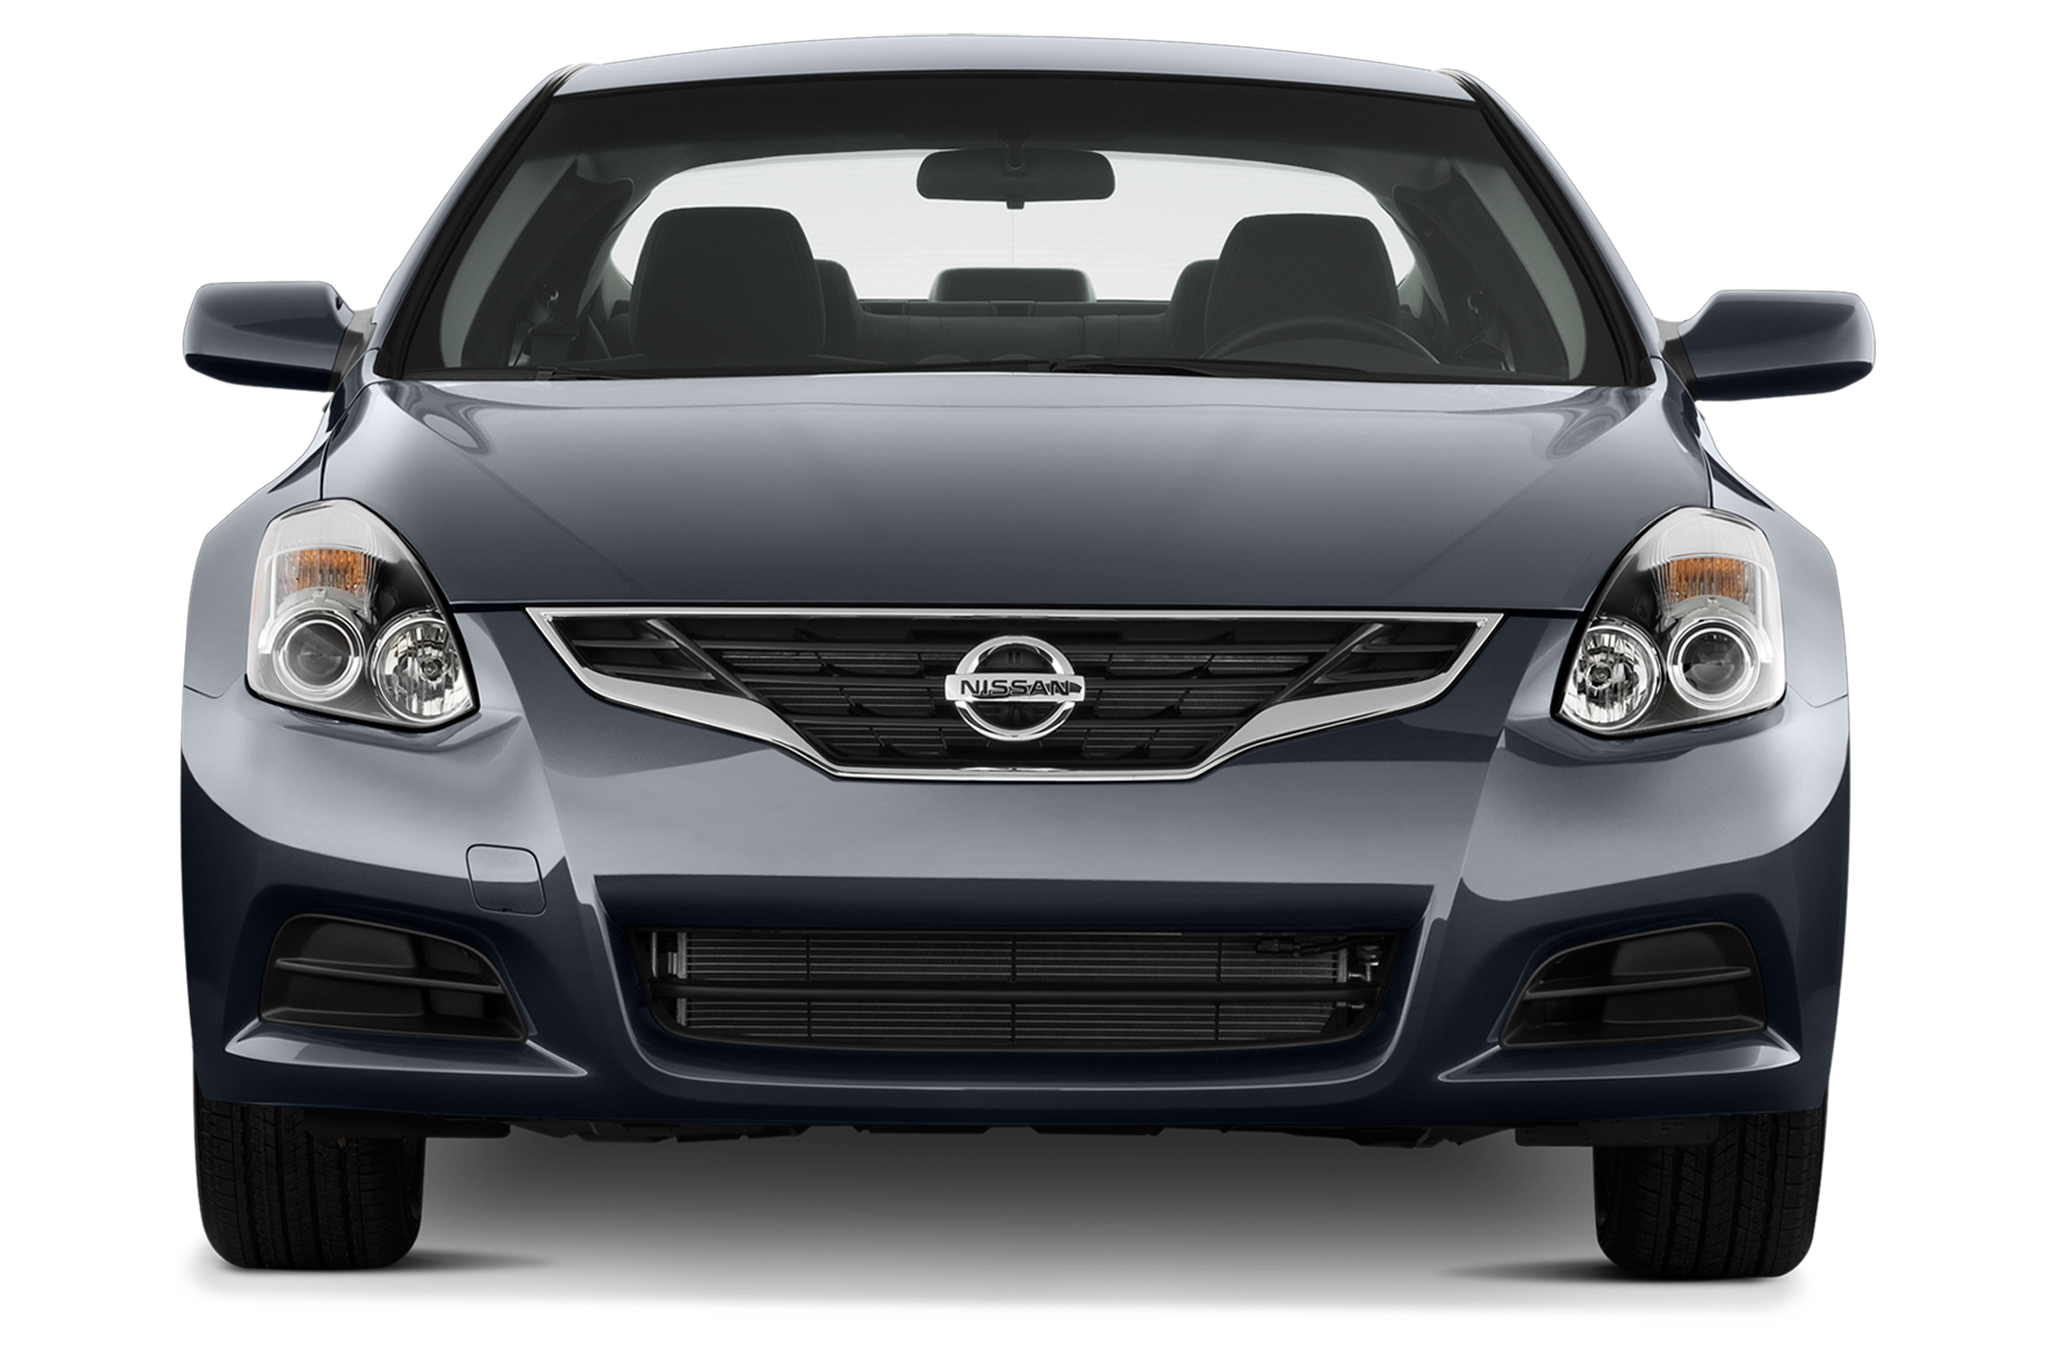 2010 Nissan Altima 3 5 Sr Nissan Midsize Sedan Review